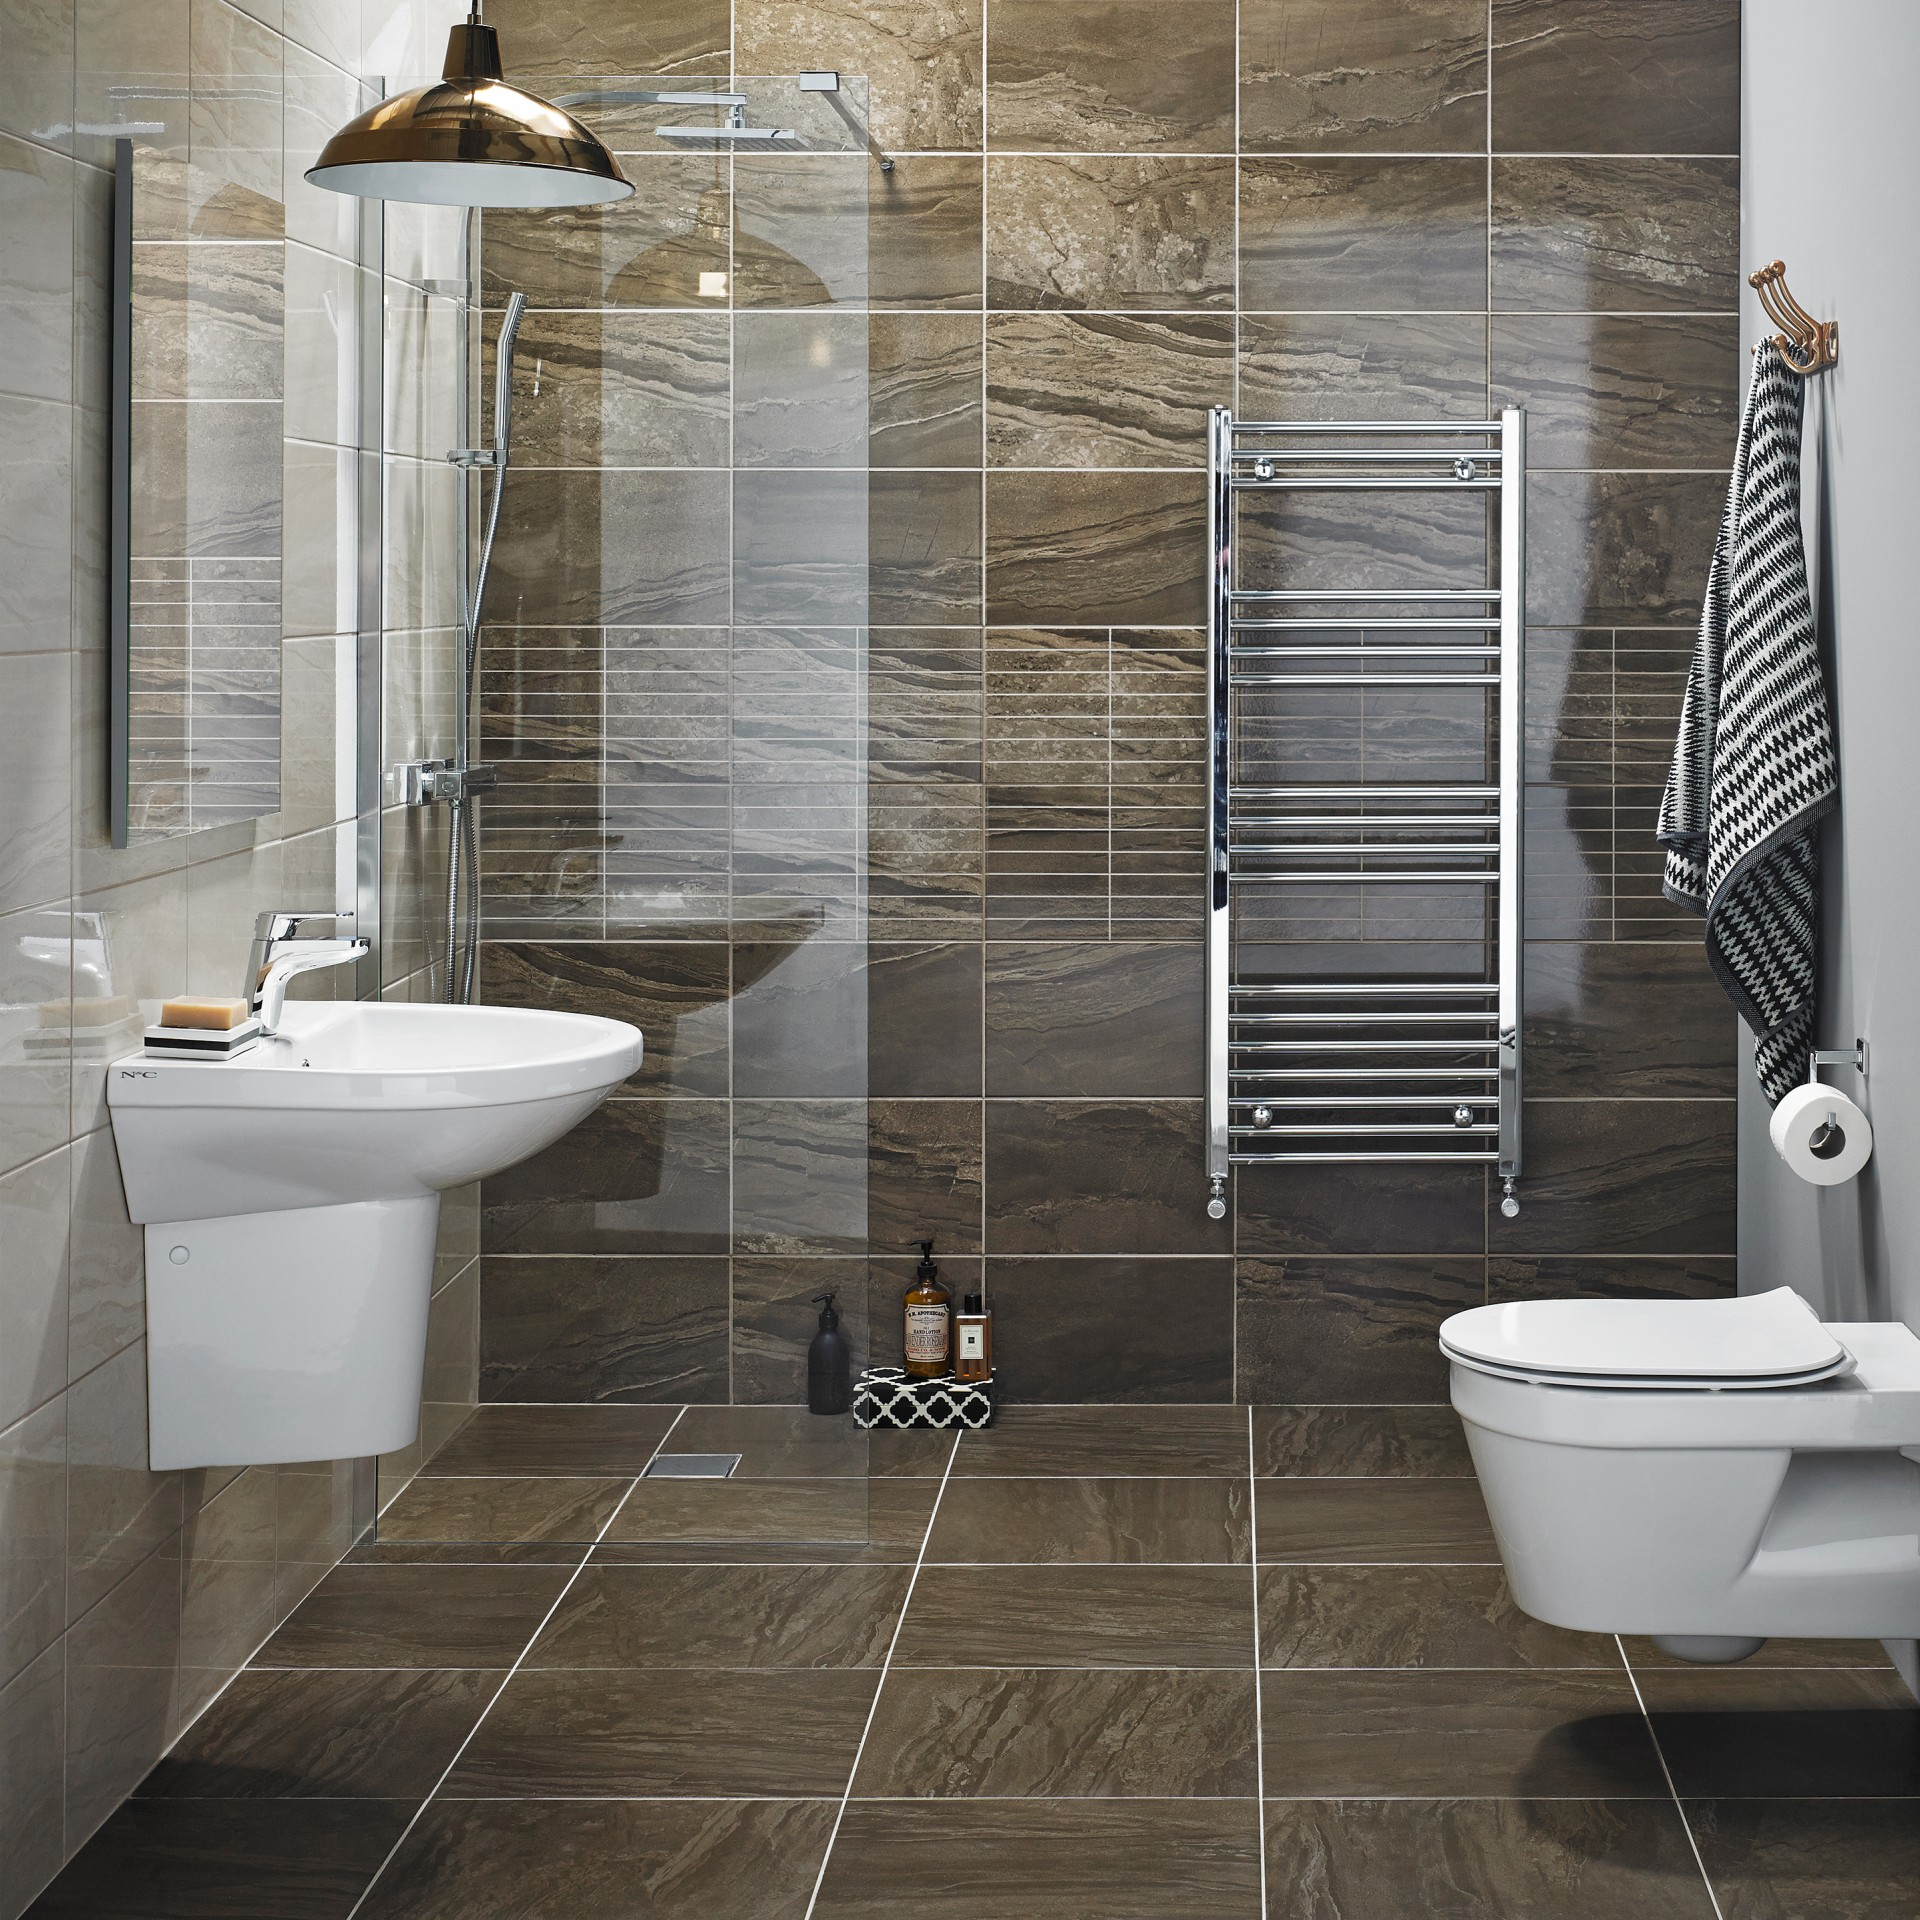 Bathroom Tile: N&C Tiles And Bathrooms